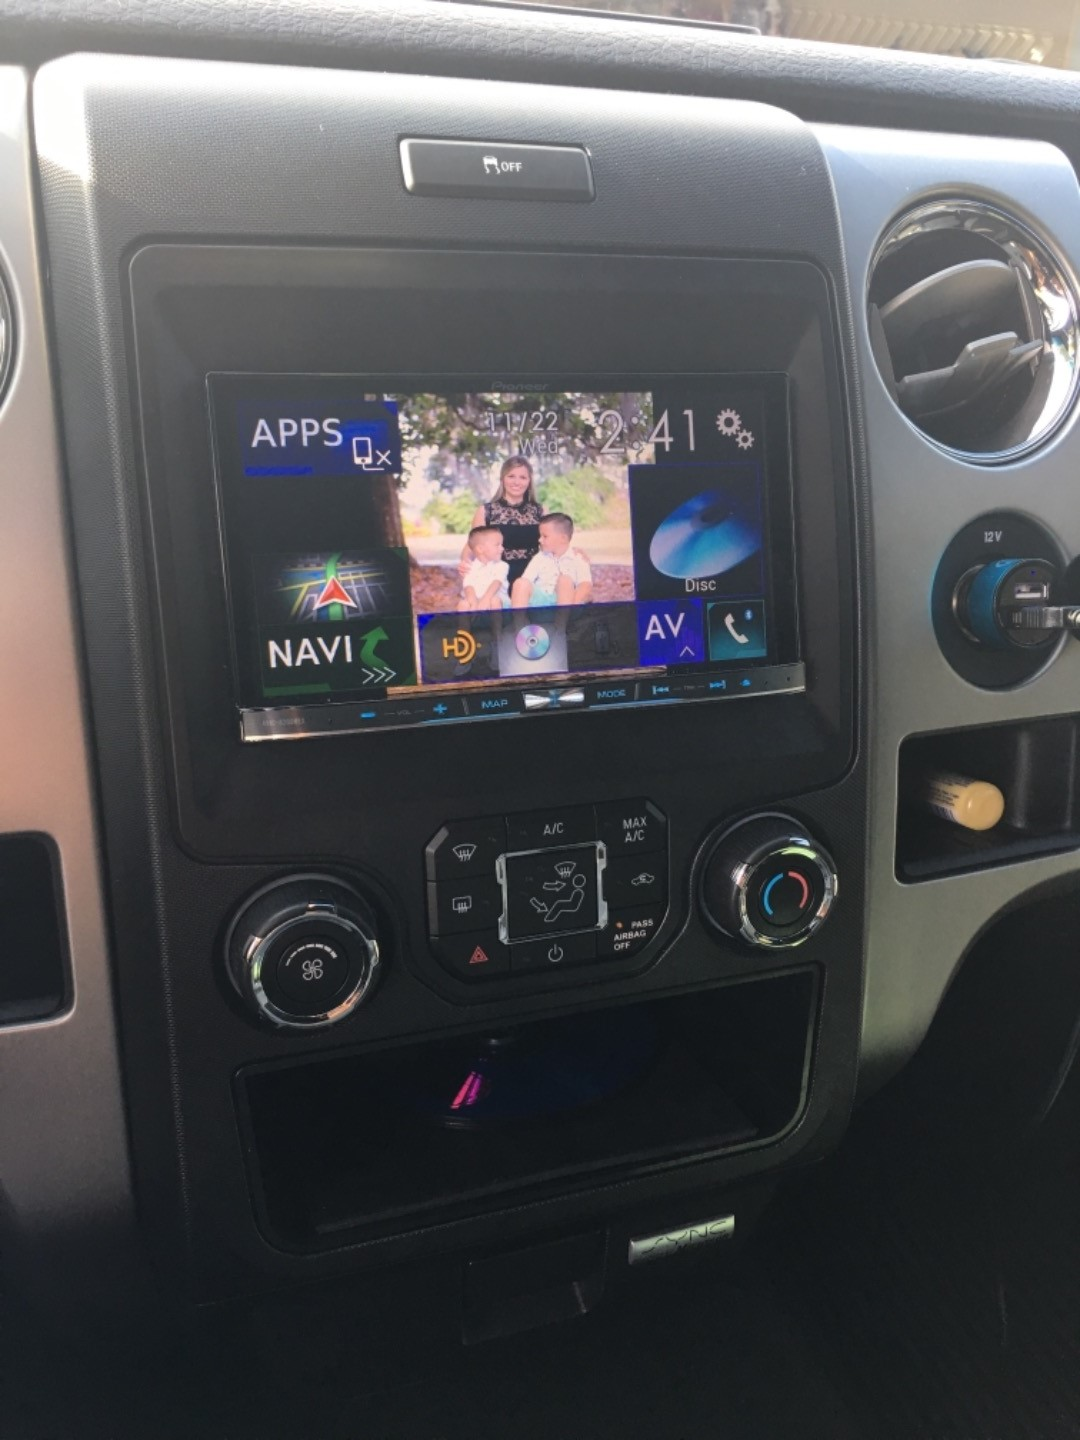 Ford F150 Xlt >> iDatalink K150 Dash Kit Install a new car stereo in select ...